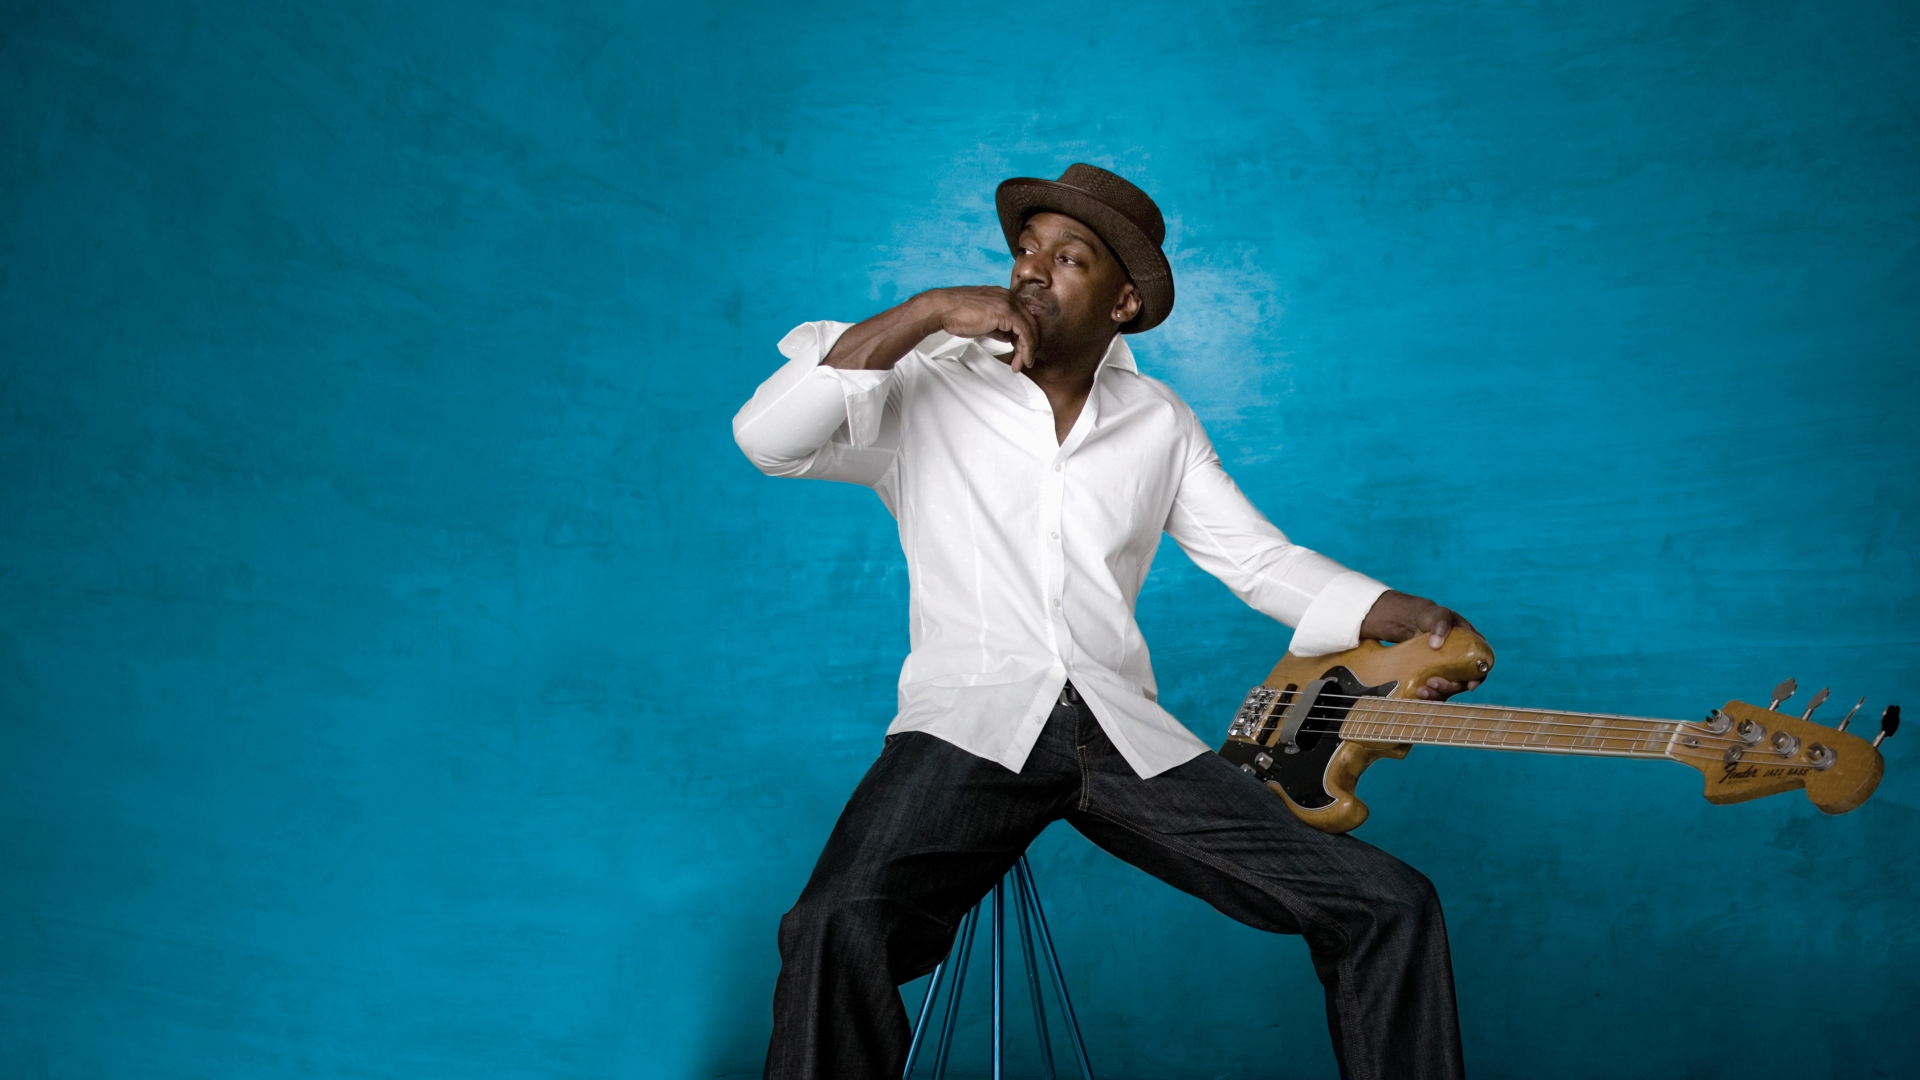 Lost Without U av Marcus Miller